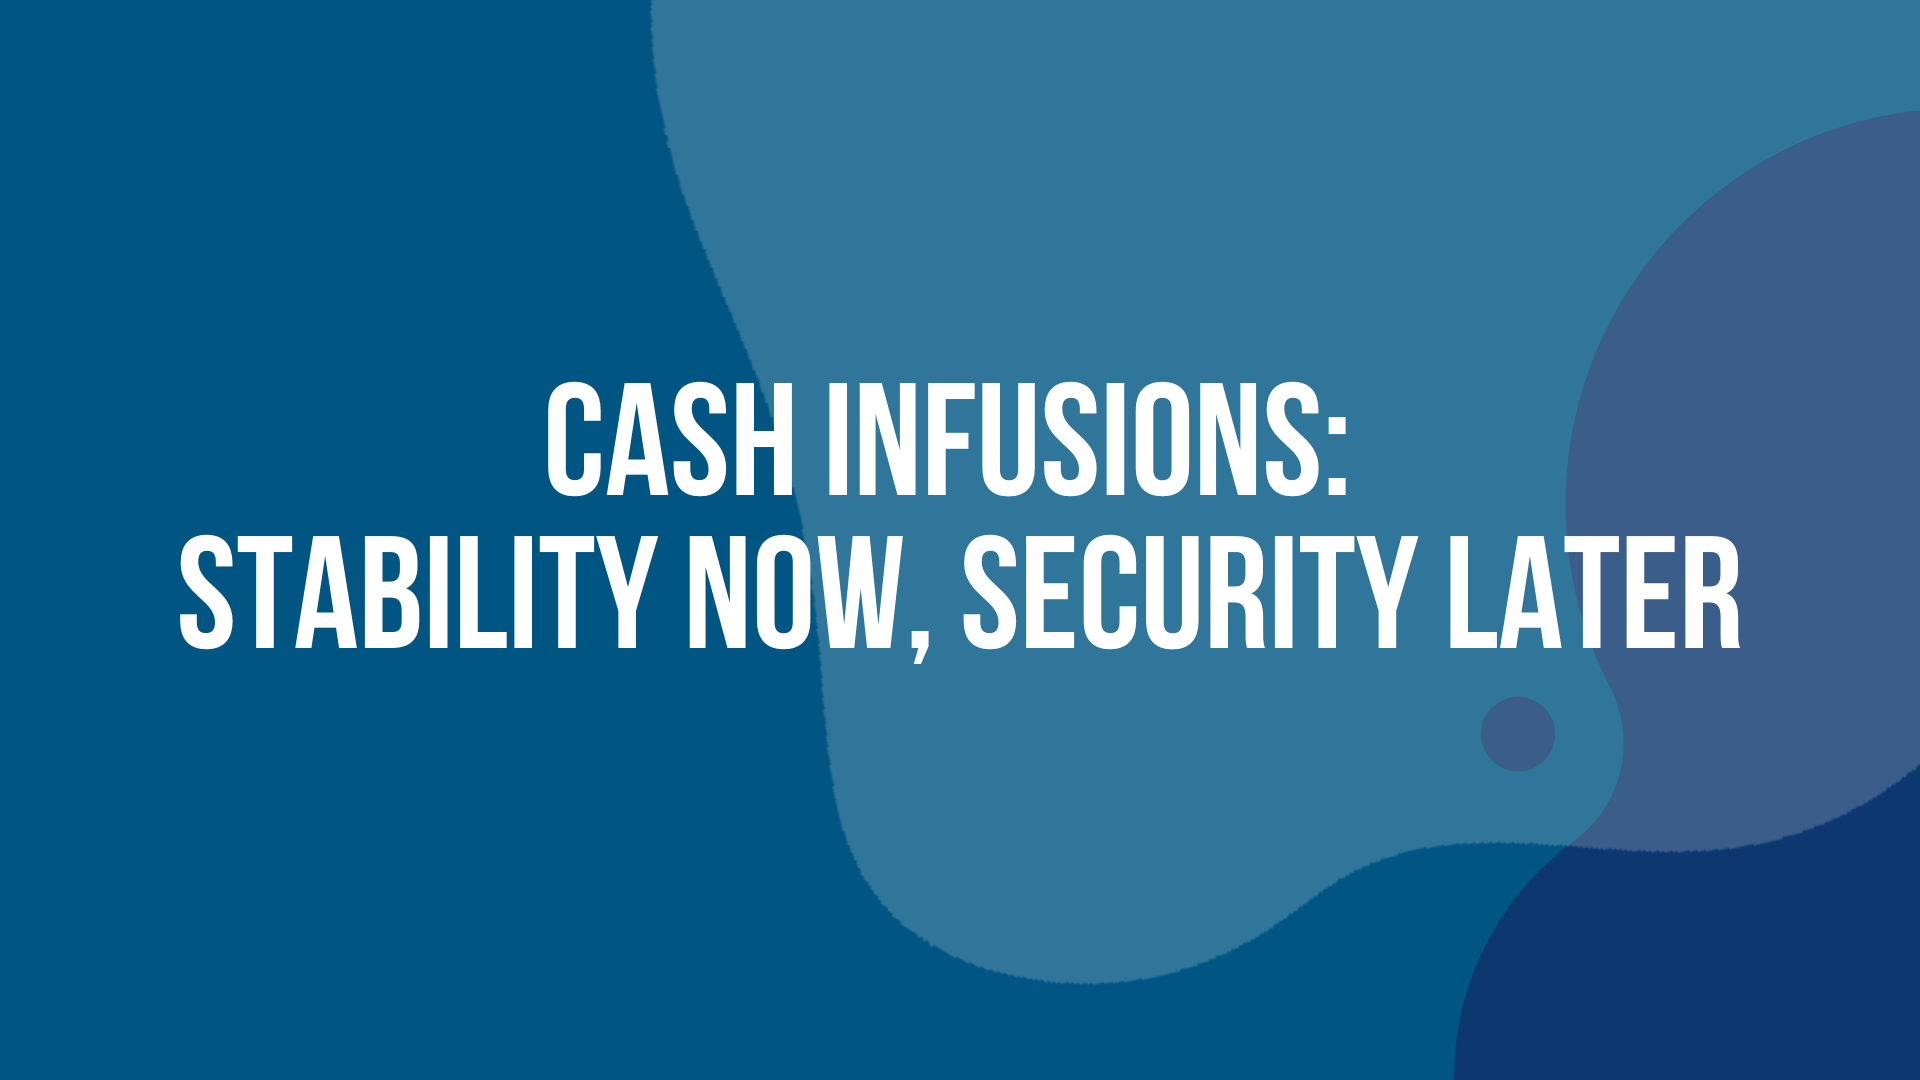 Cash Infusions: Stability now, Security Later